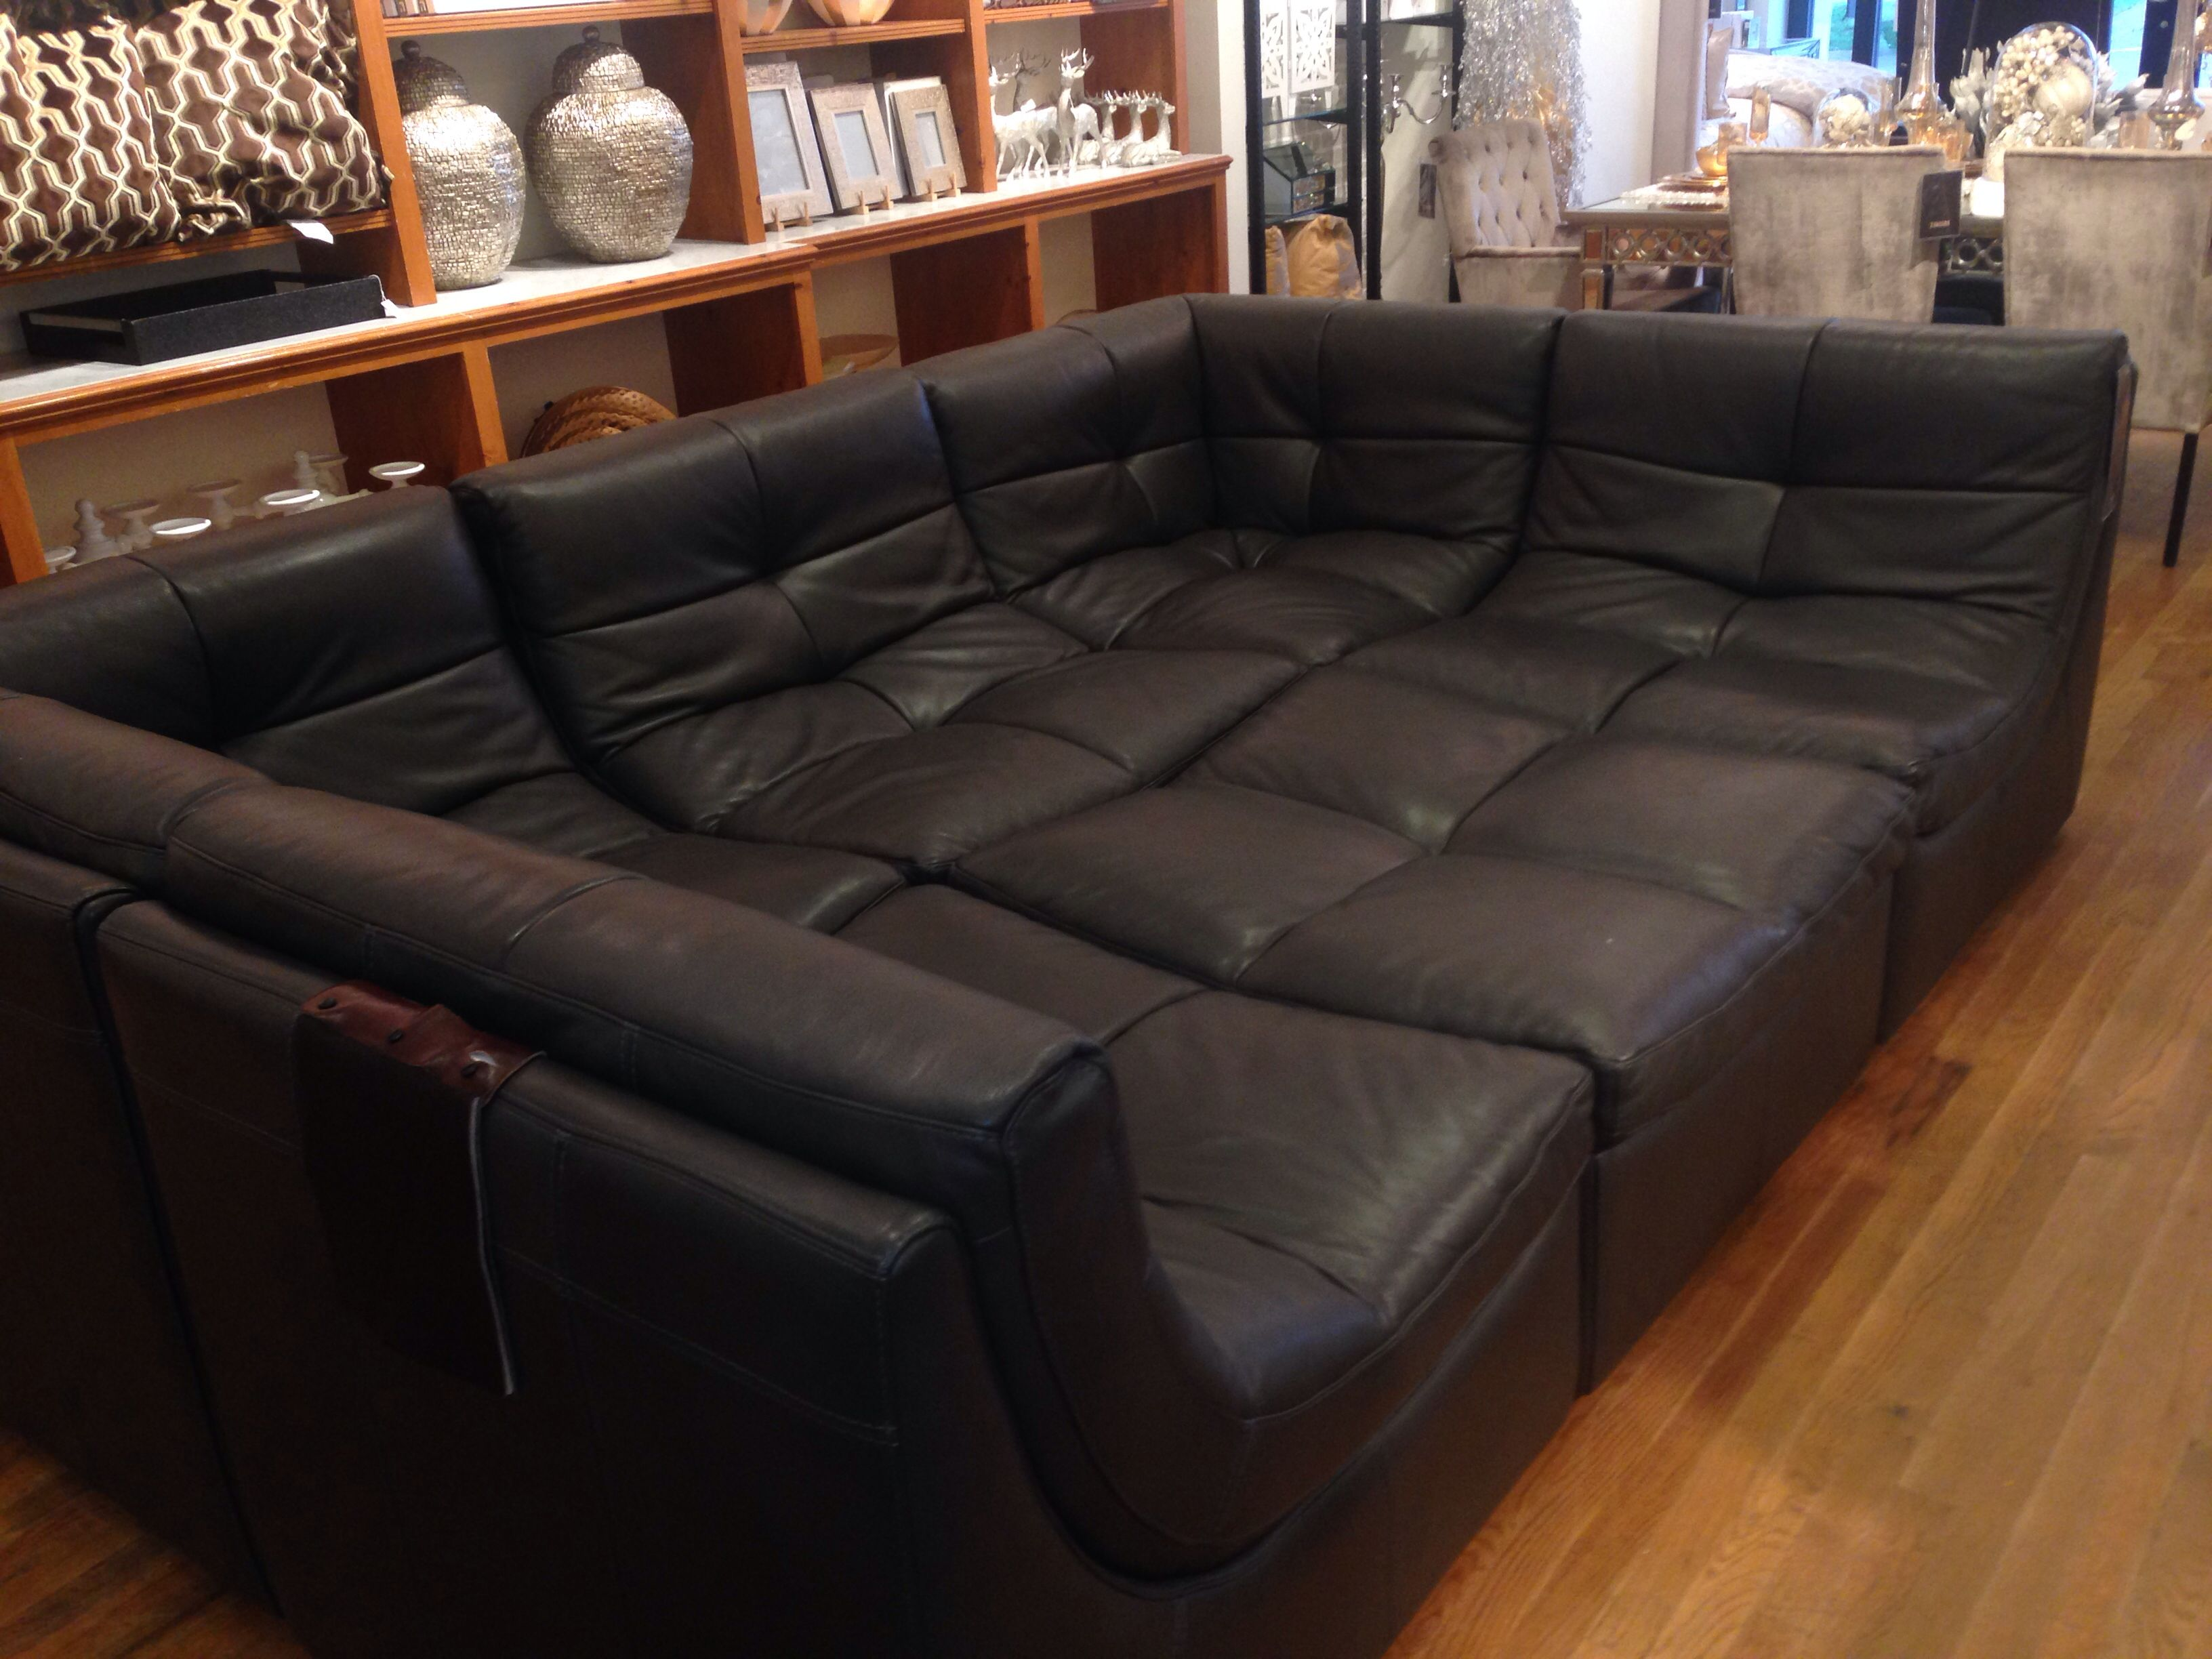 Big Couch In 2020 Large Couch Large Sectional Sofa Pit Sofa